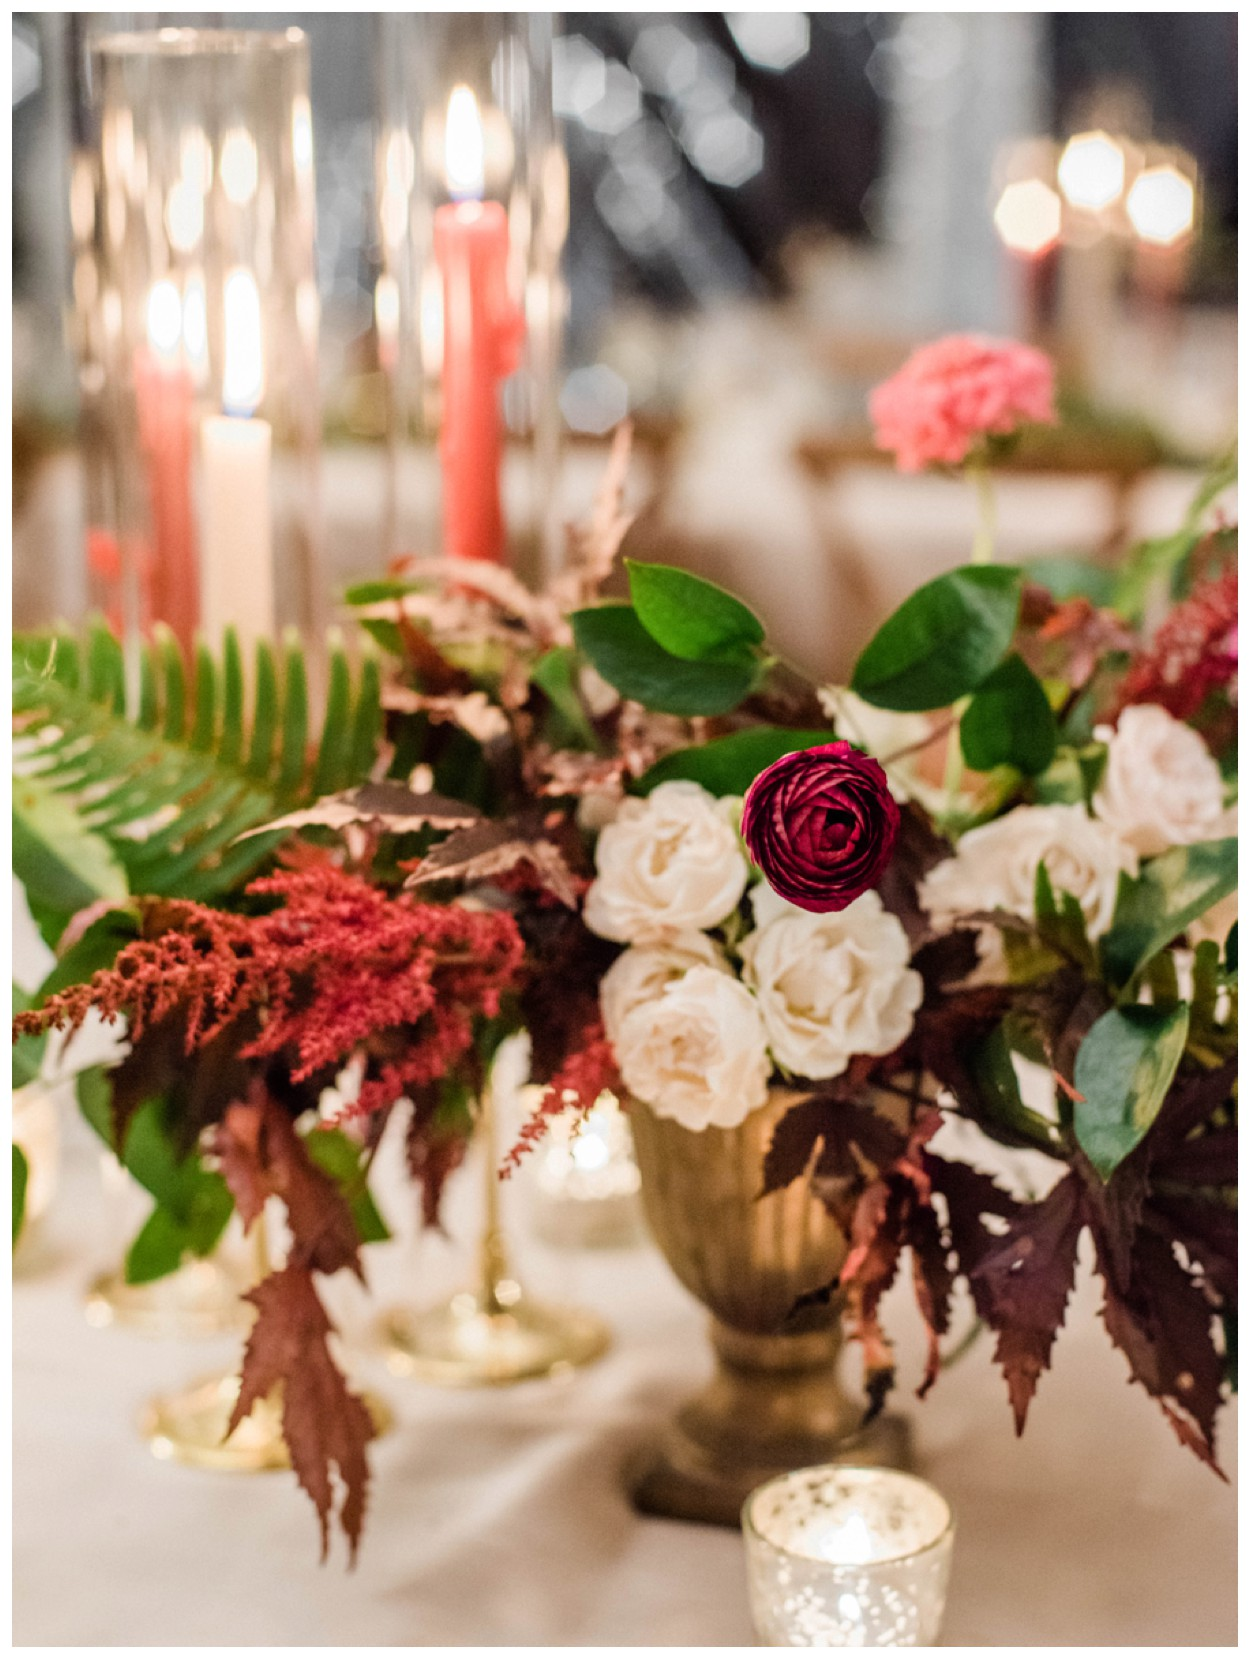 Sun drenched fall wedding in shades of pink at Oxon Hill Manor in Maryland by Washington DC fine art photographer Lissa Ryan Photography